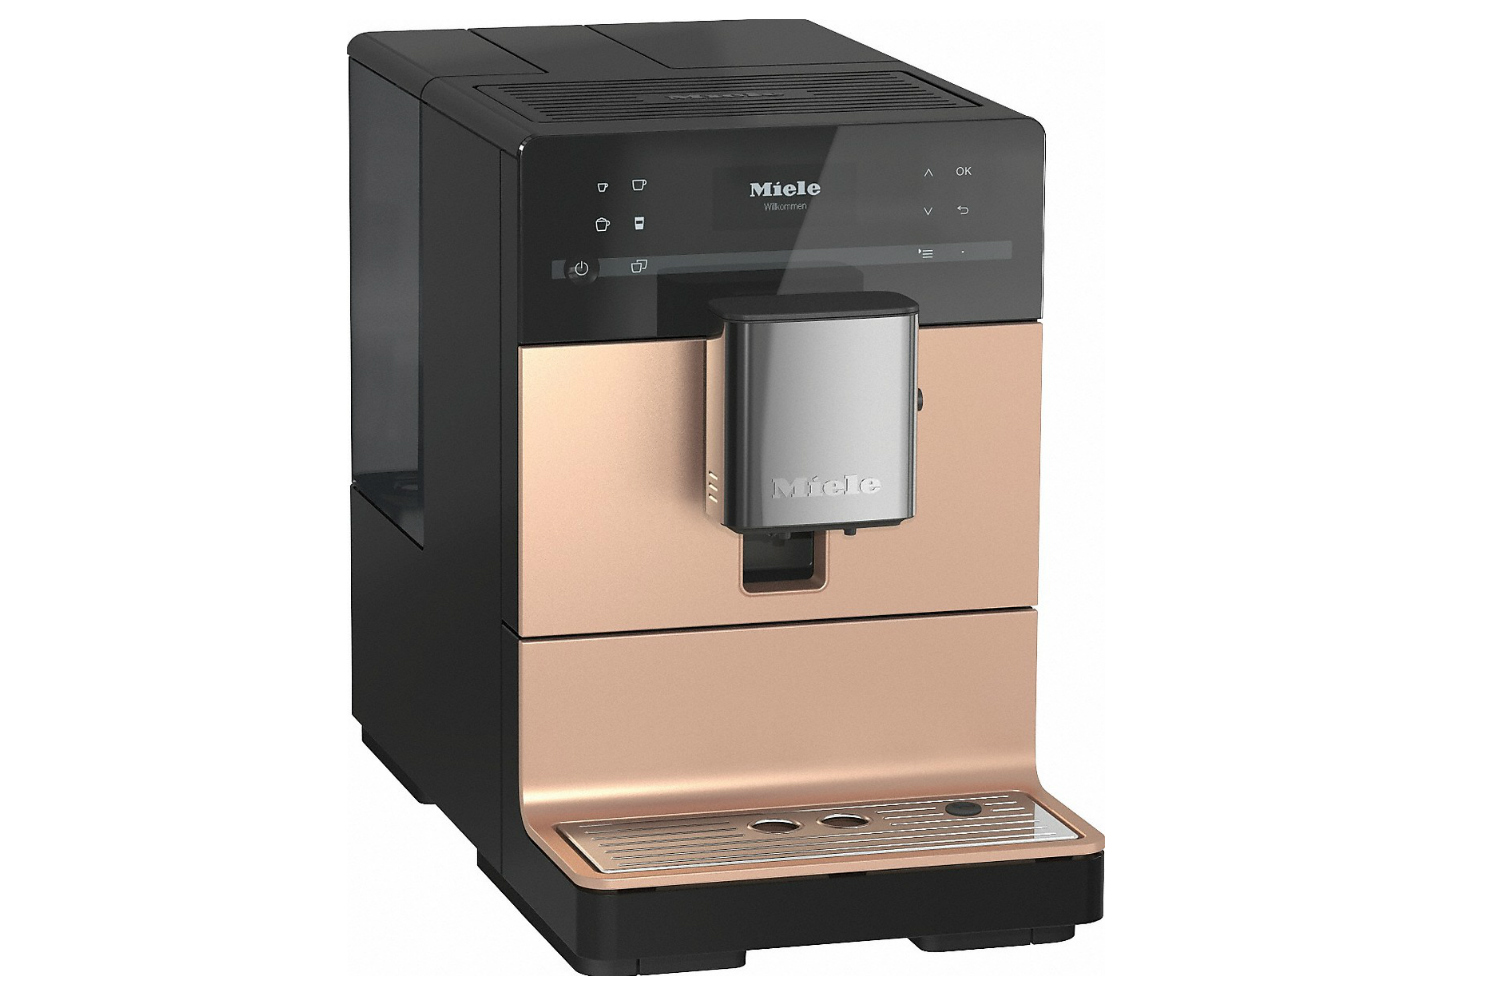 Shapely Two Miele Coffee Maker How To Use Miele Coffee Maker Parts Onetouch Coffee Enjoyment Miele Cm Counter Coffee Machine Onetouch Miele Cm Counter Coffee Machine Two houzz-02 Miele Coffee Maker